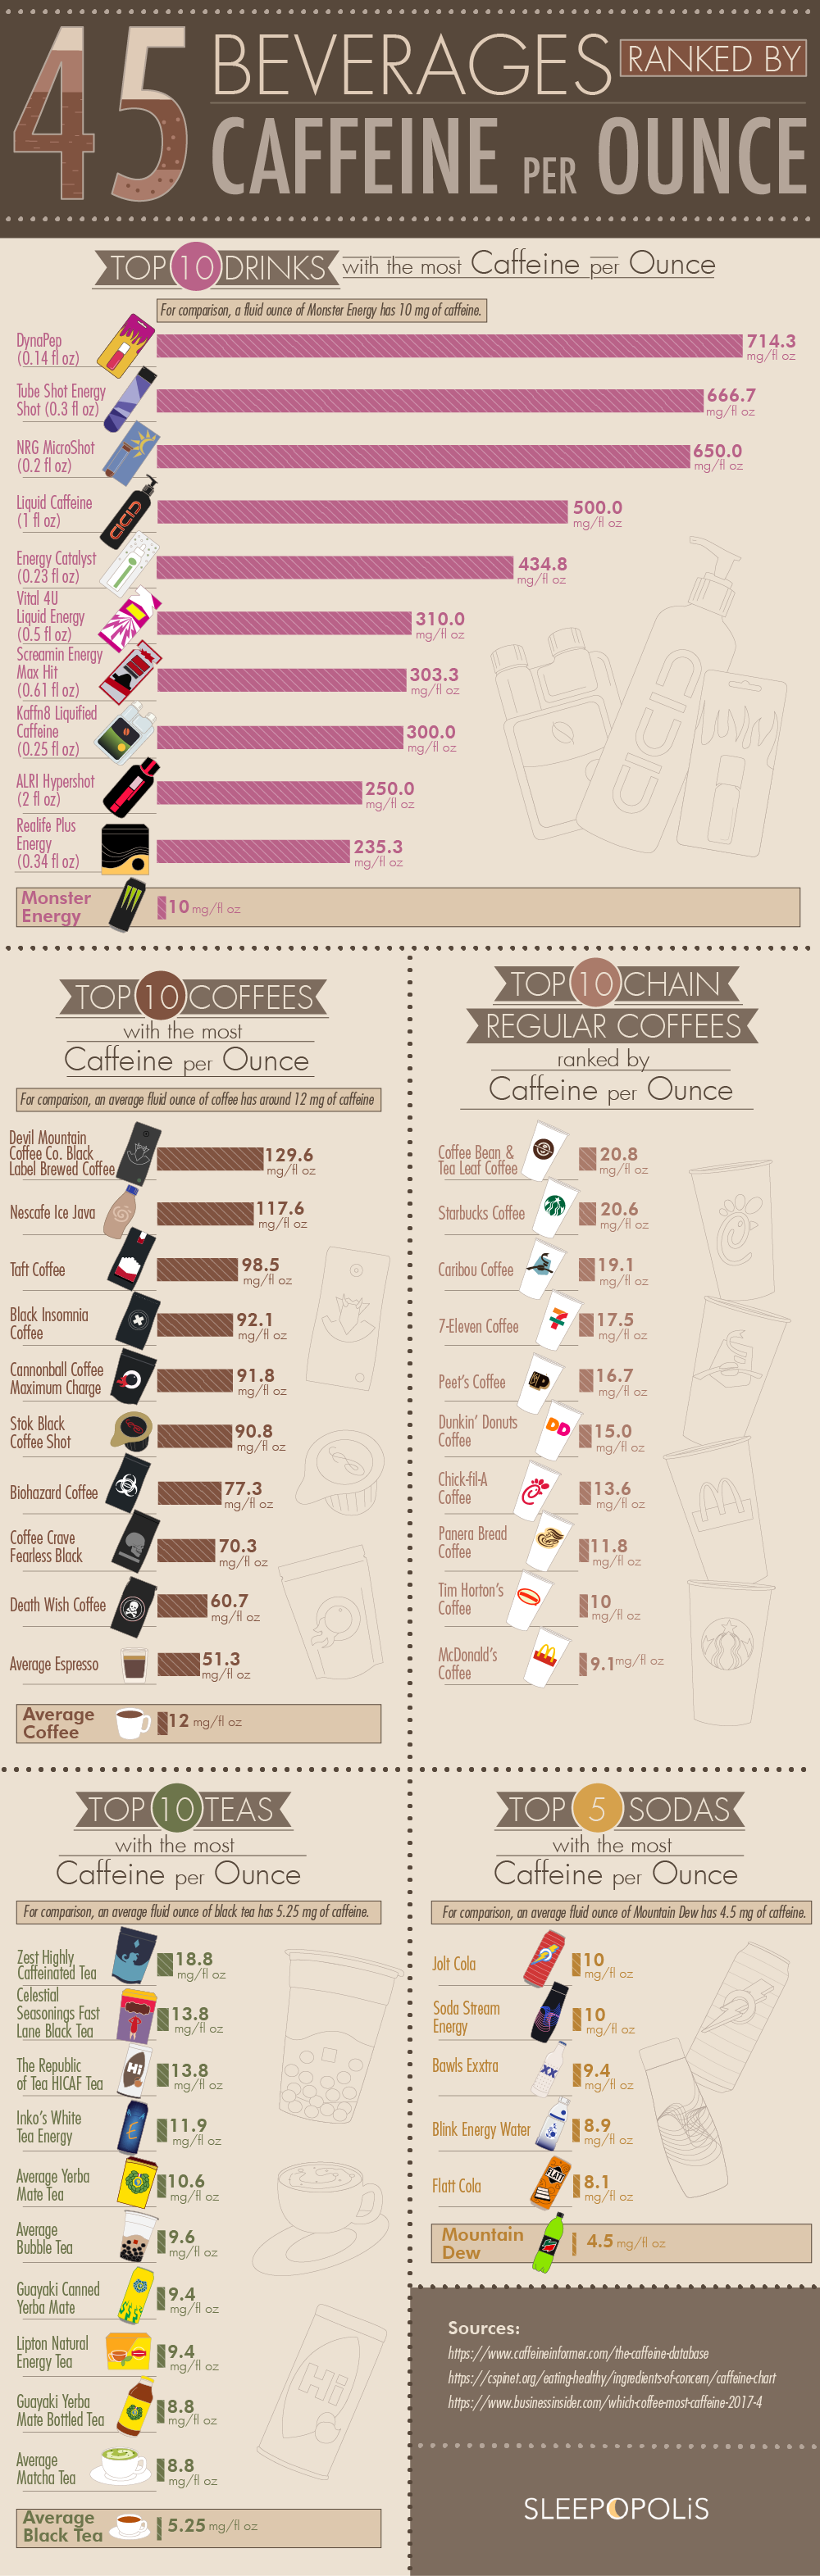 45 Beverages Ranked by Caffeine Per Ounce